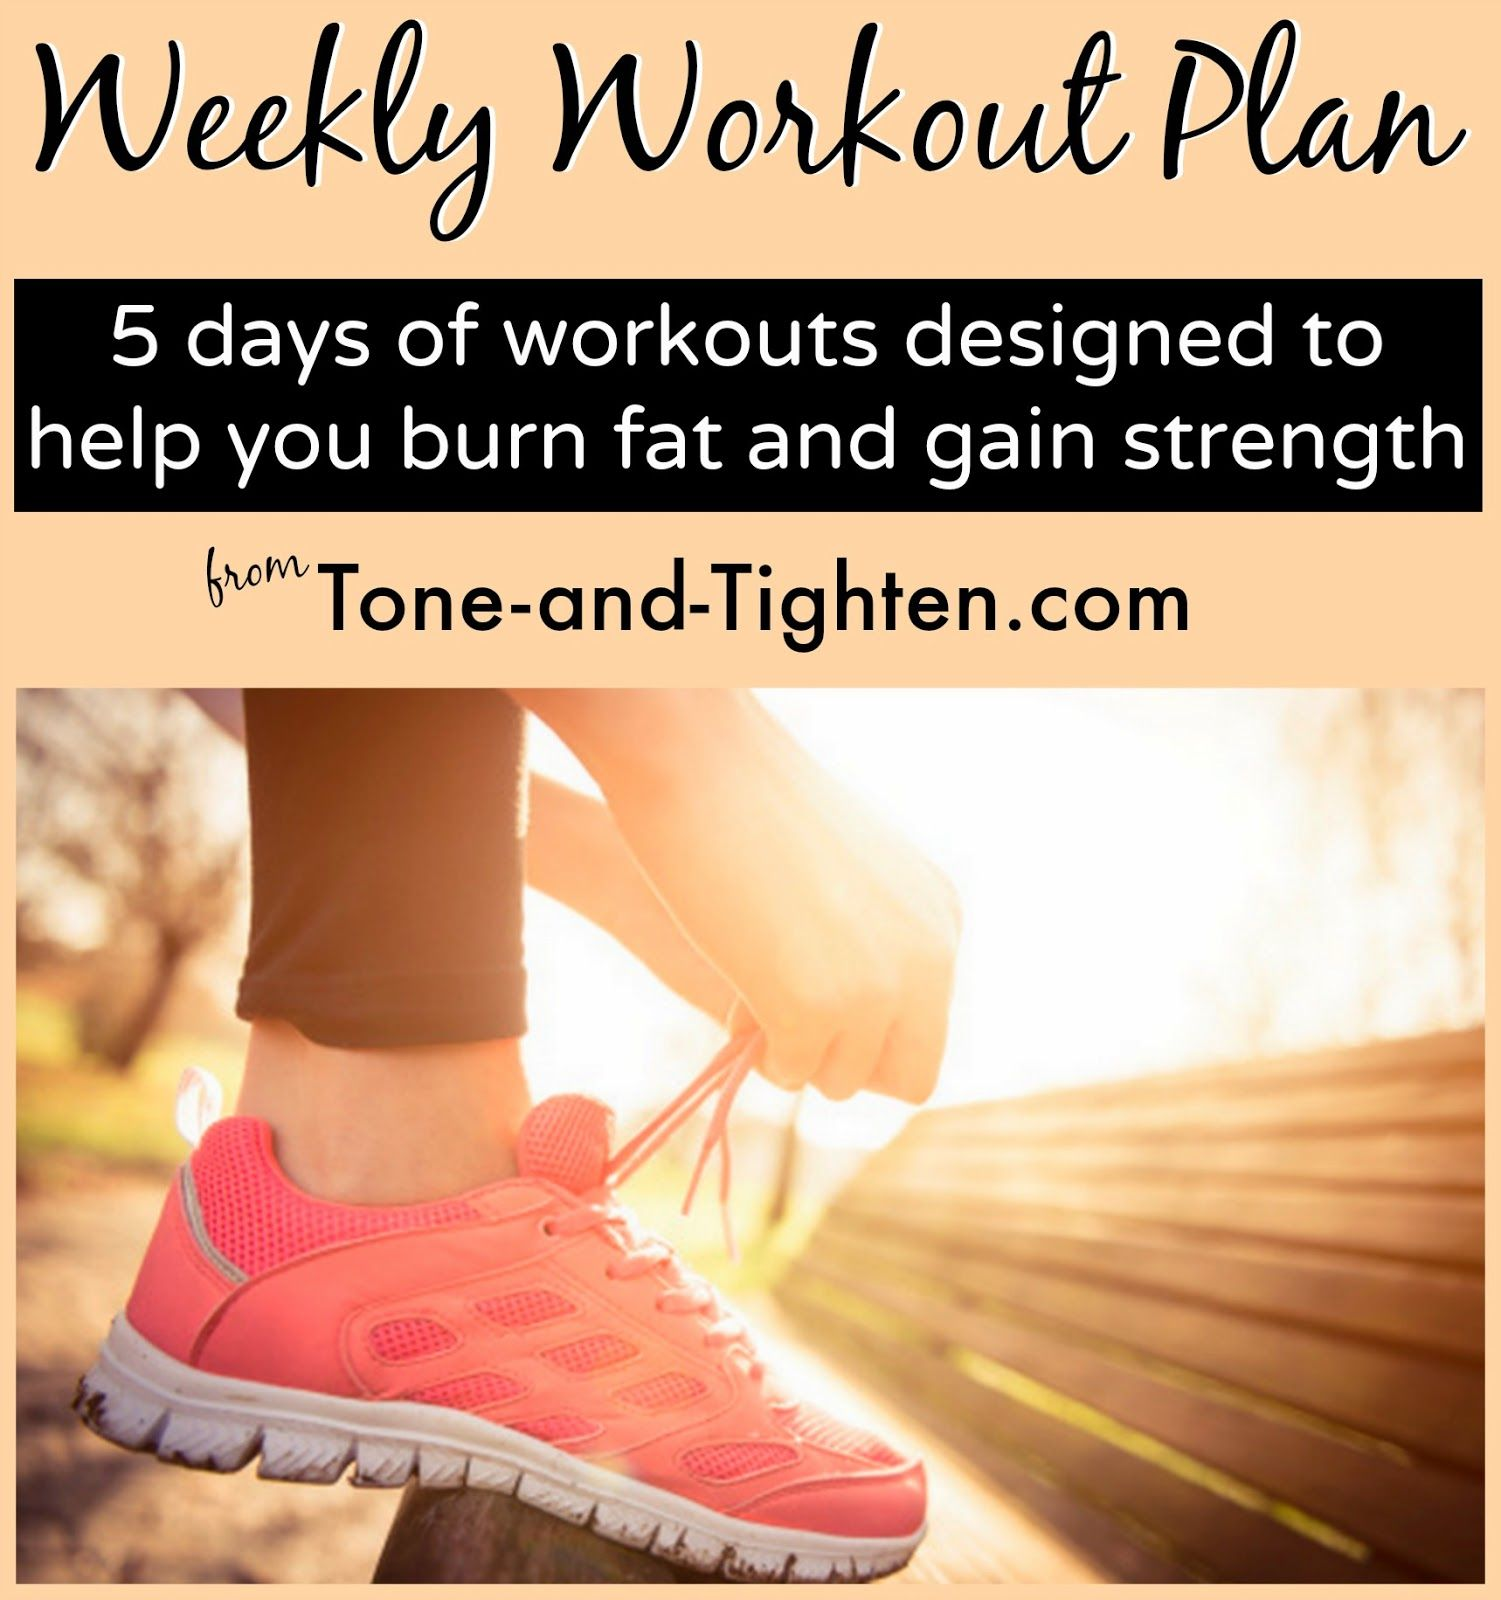 5 FREE workouts in one place! Designed specifically to burn fat and gain strength. #workout #fitness from Tone-and-Tighten.com